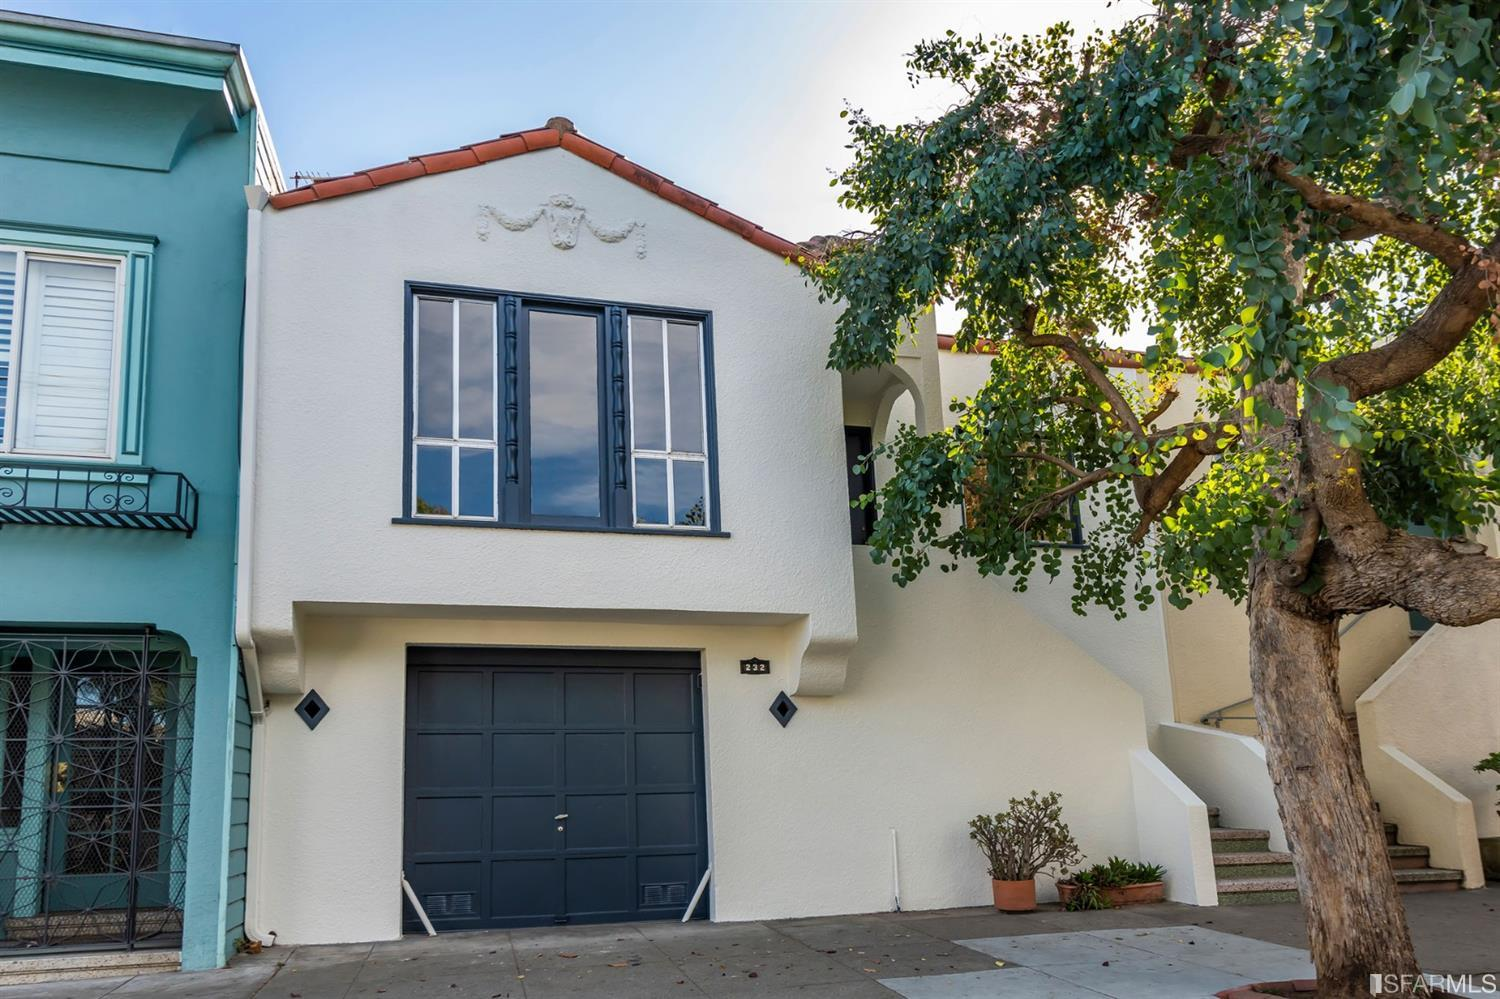 Bernal Heights Home On Large Lot Gets 12 Offers, Sells In 5 Days